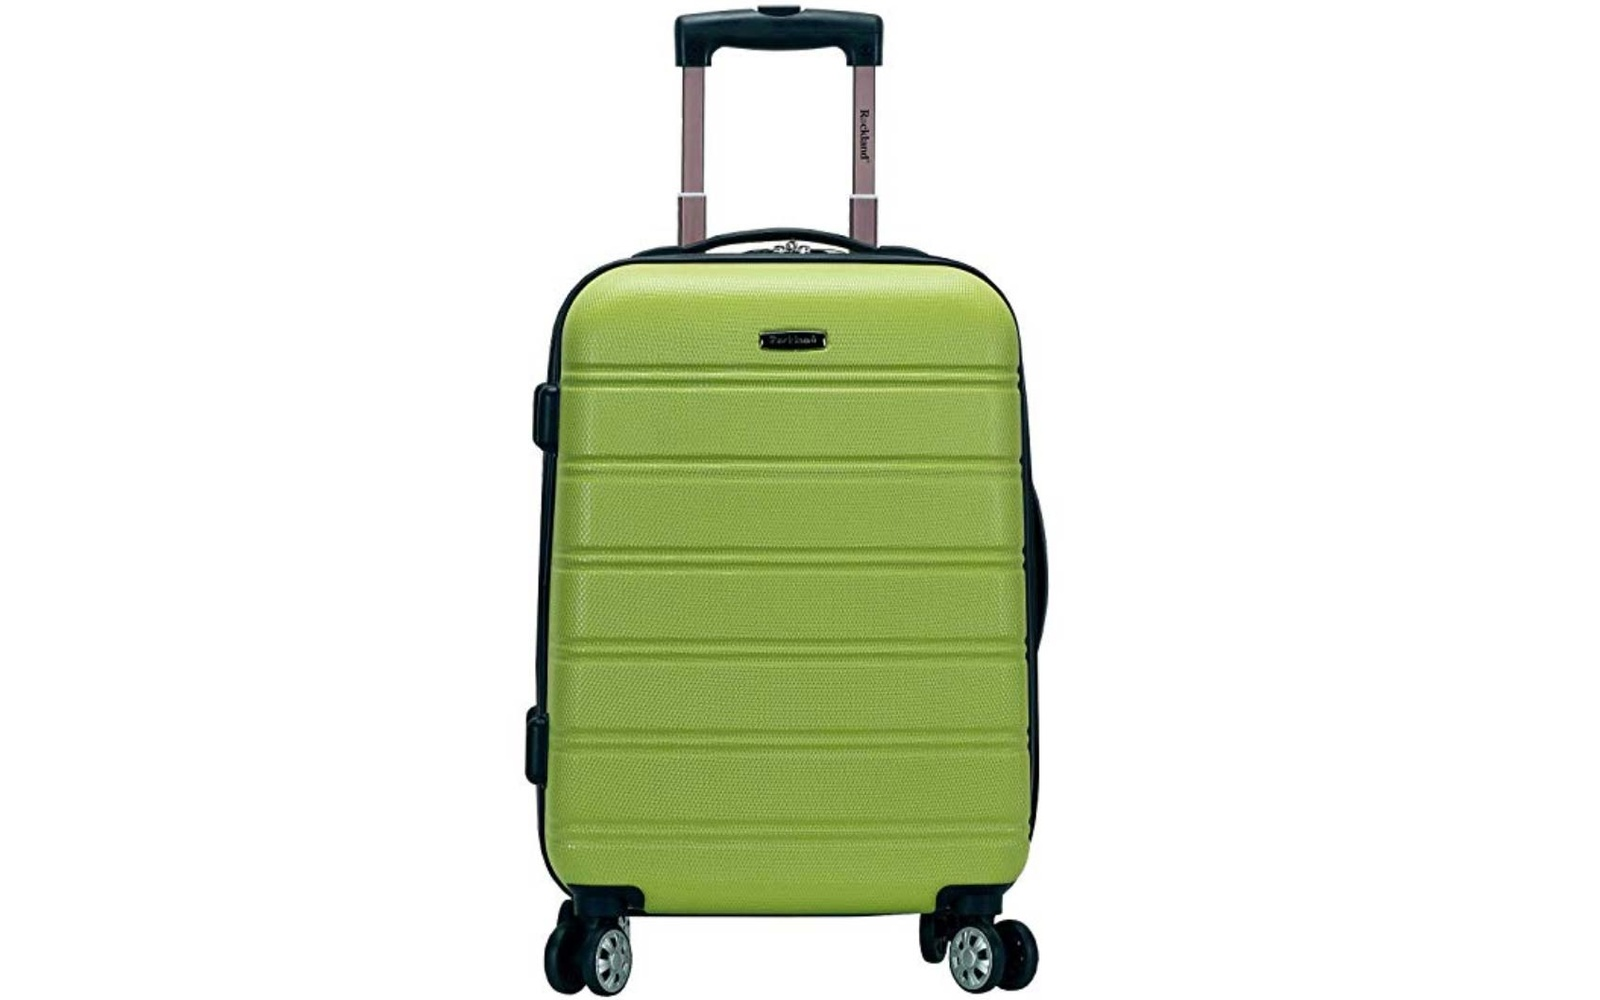 Rockland 'Melbourne' 20-inch Expandable Carry-on Luggage